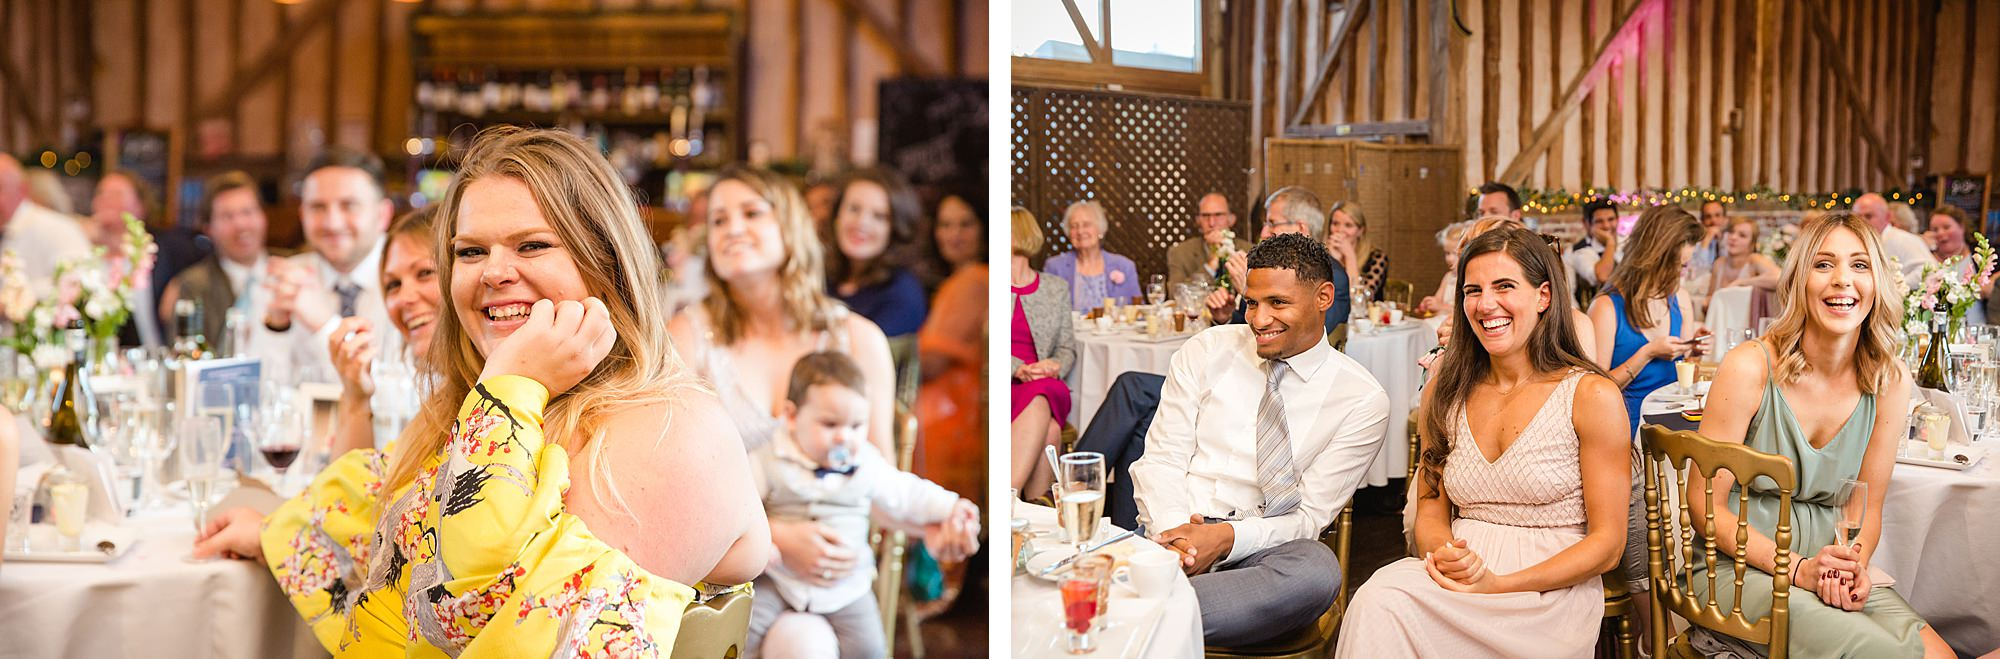 Lillibrooke Manor wedding guests laughing during speeches